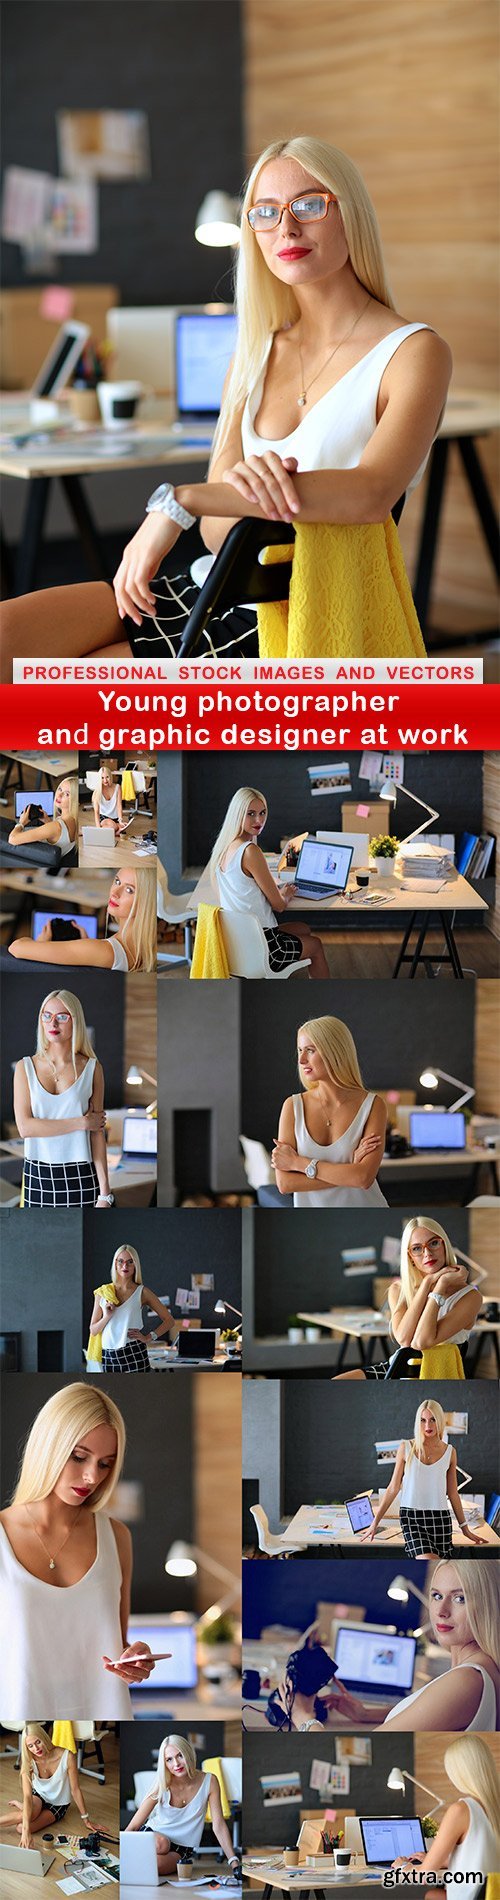 Young photographer and graphic designer at work - 15 UHQ JPEG